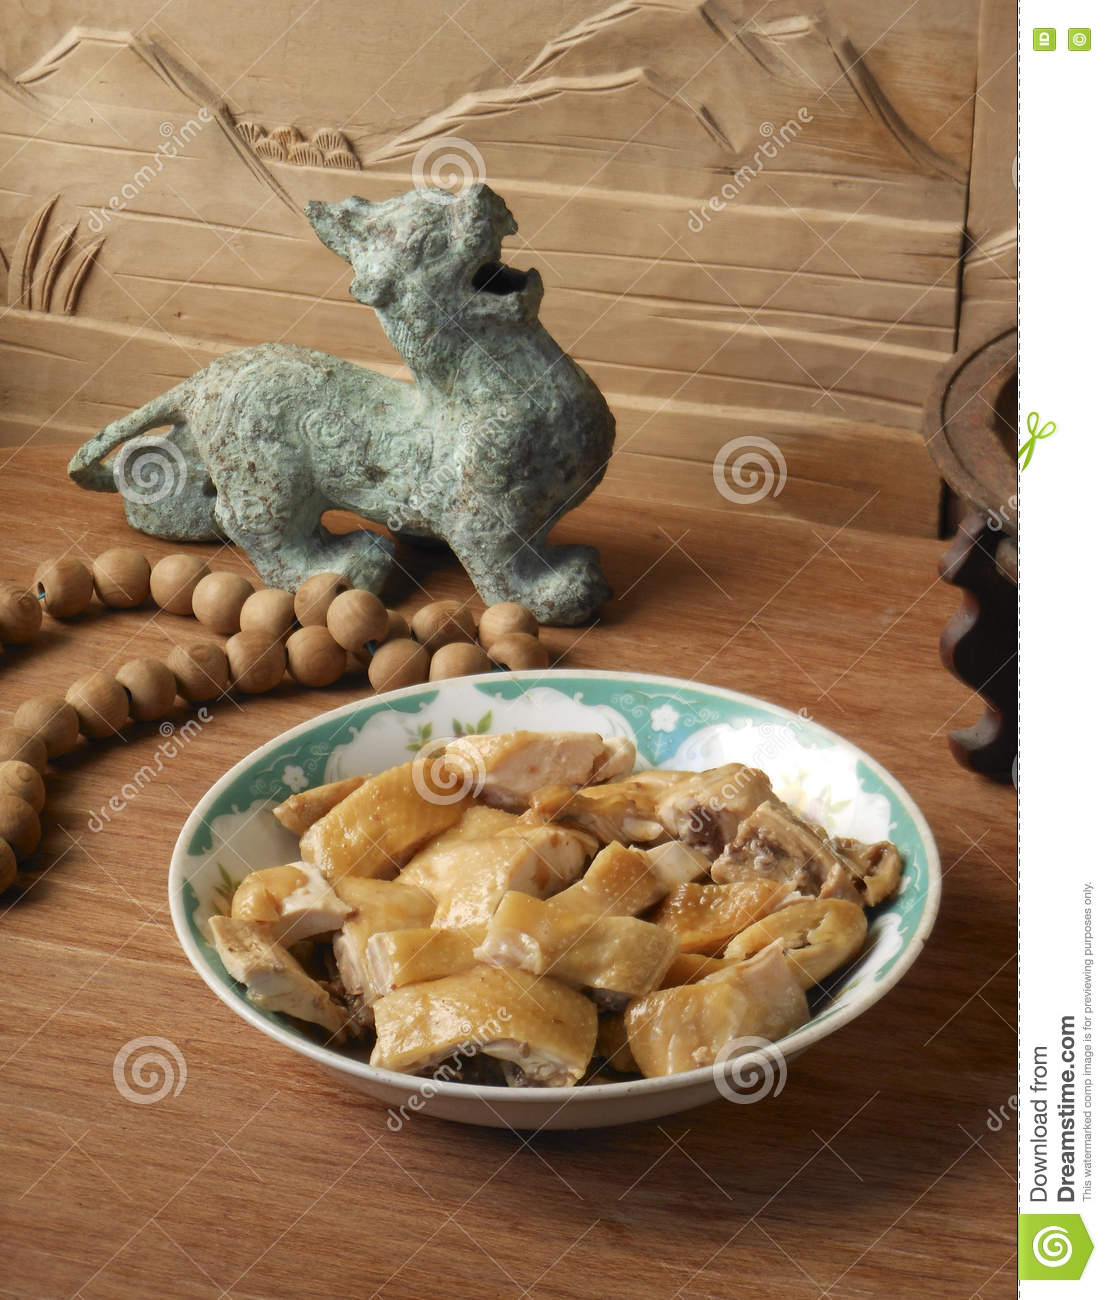 Chinese food and curios stock image  Image of dinner - 72057757